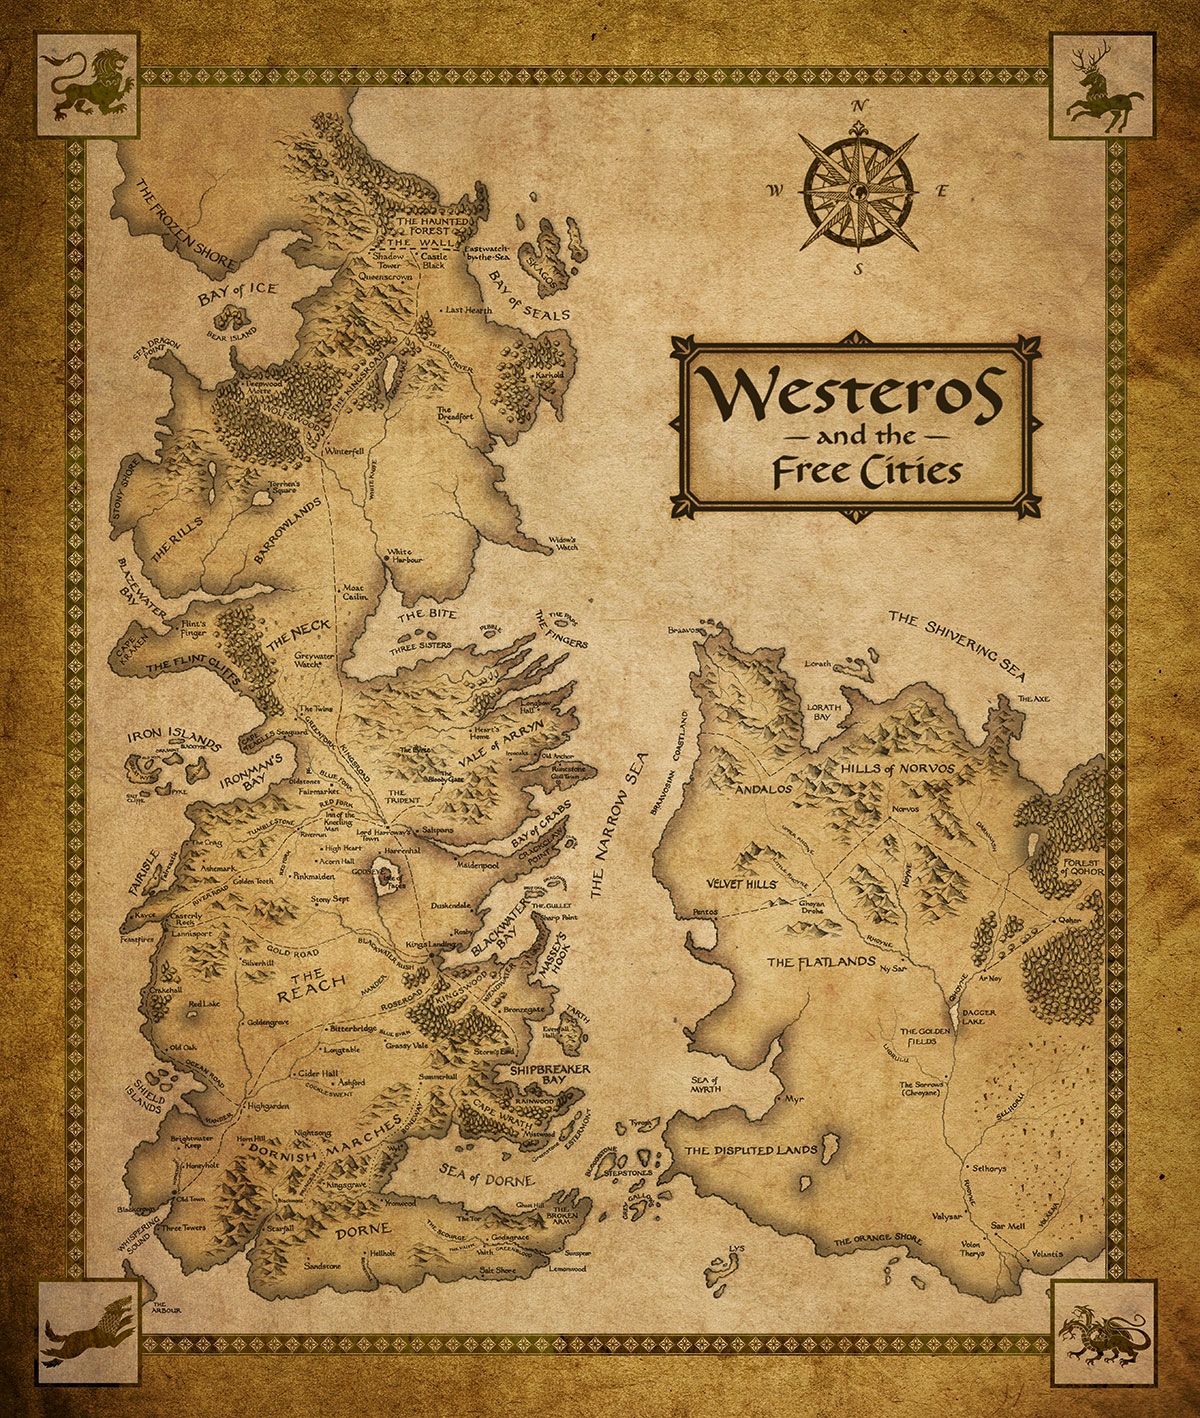 The map of Westeros